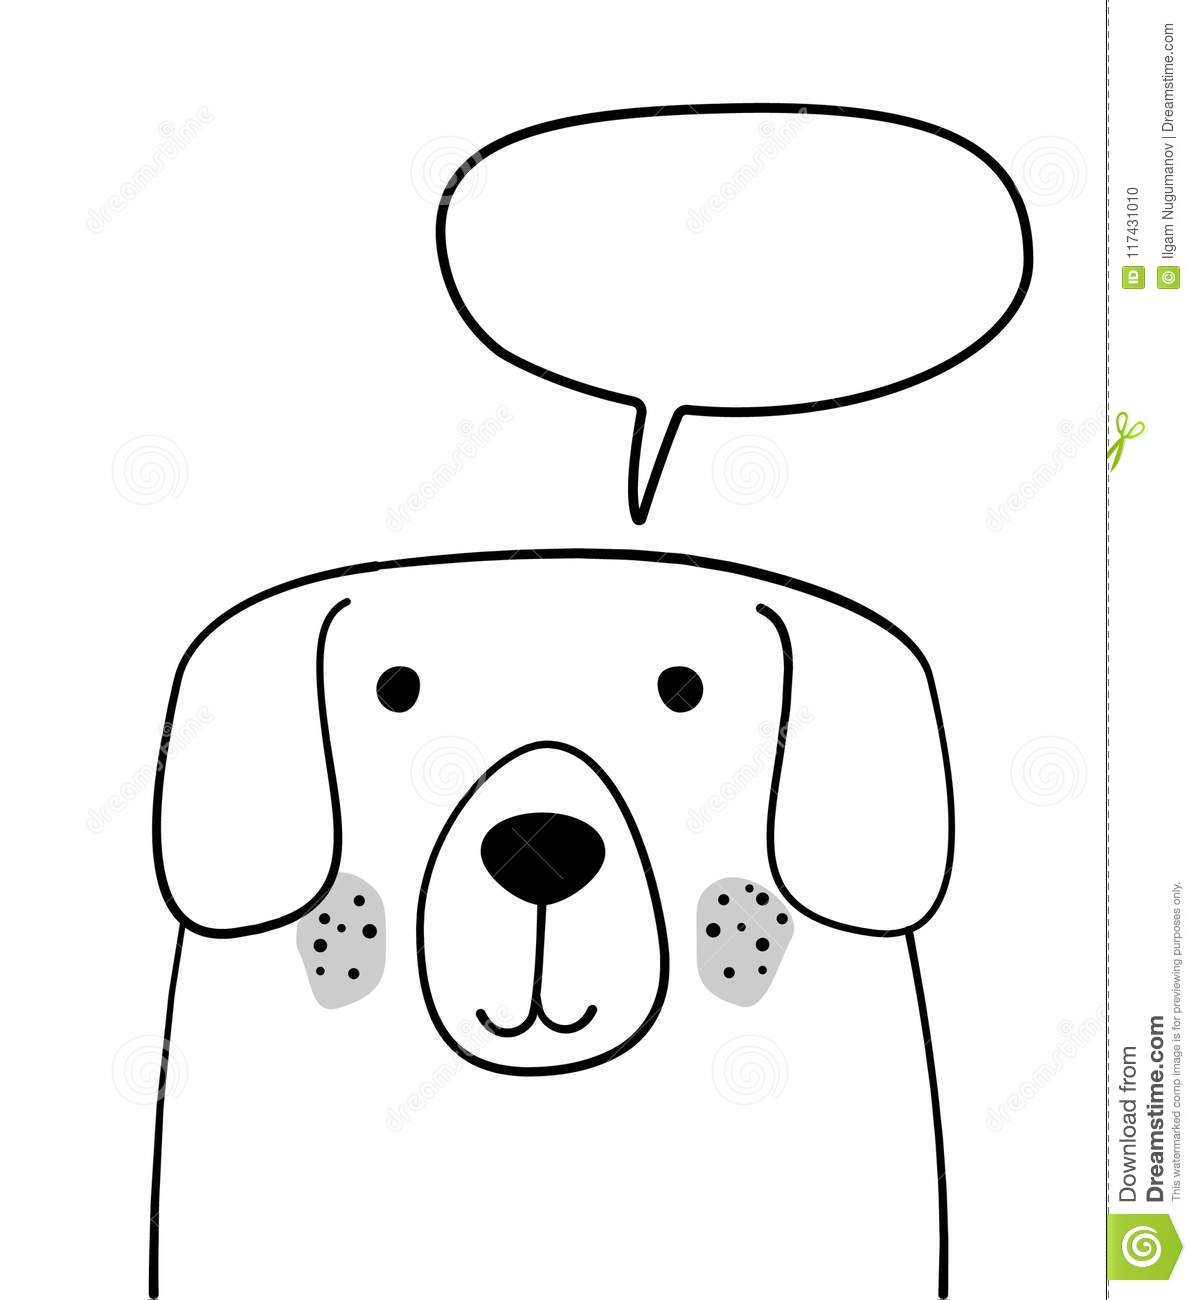 doodle sketch dog with chat cloud illustration cartoon vector dog